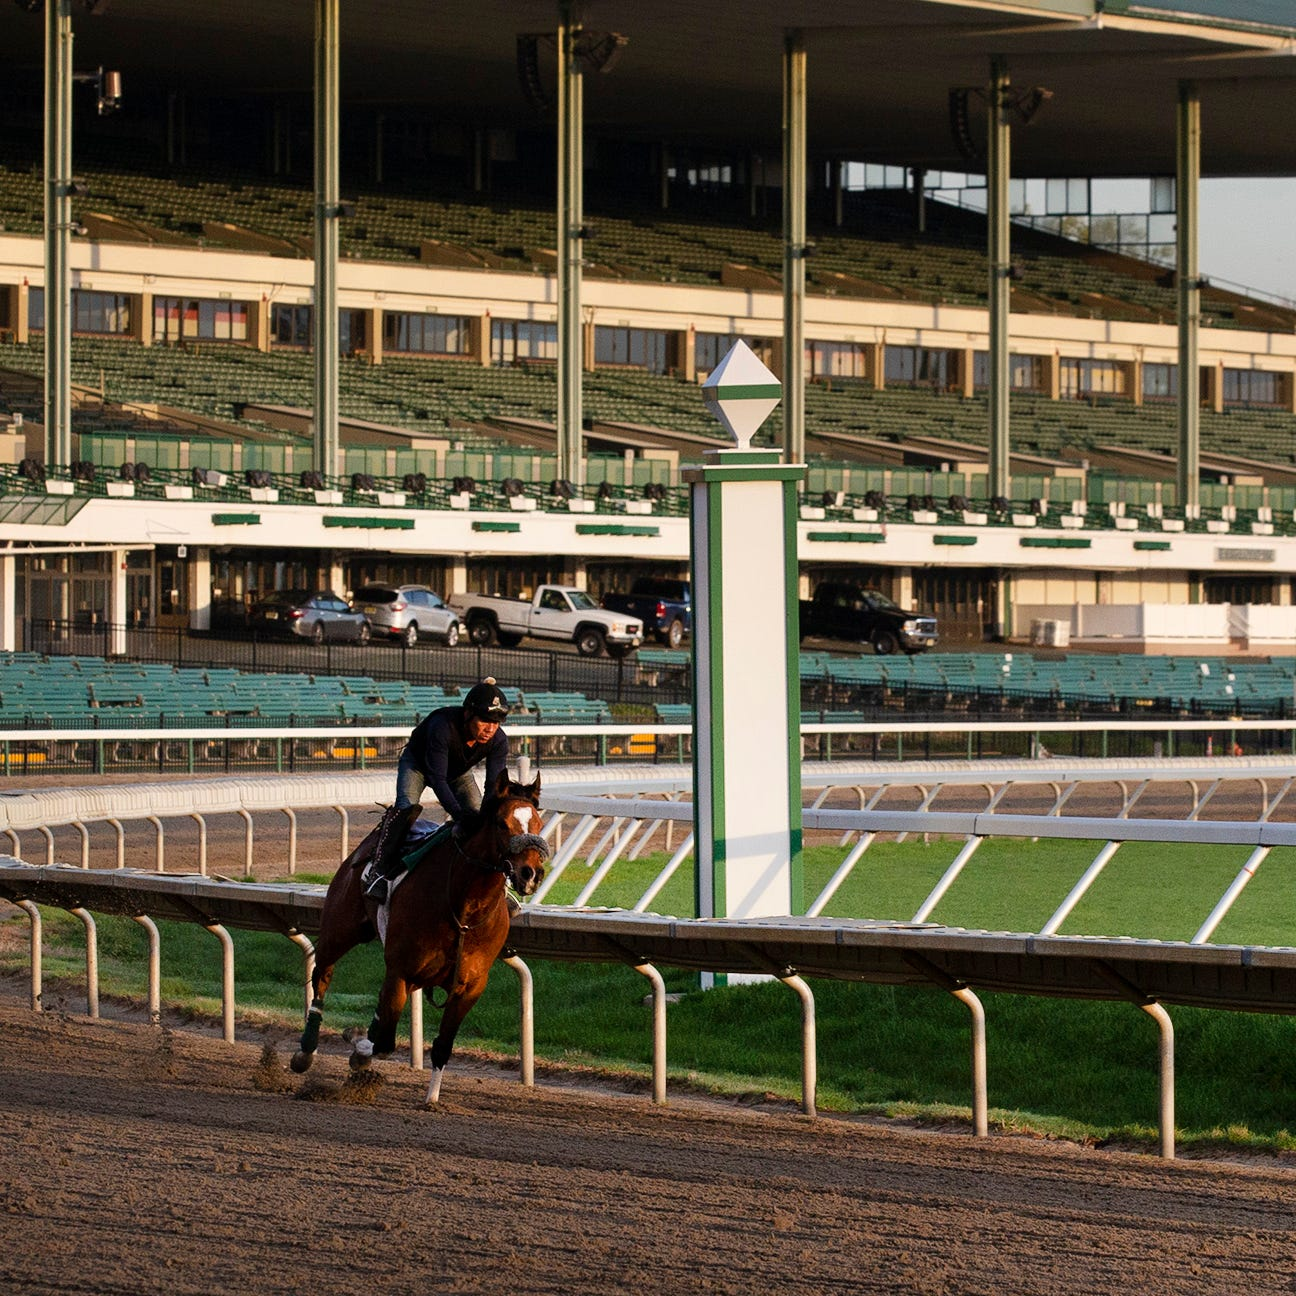 Optimism abounds at Monmouth Park with higher purses, more racing days